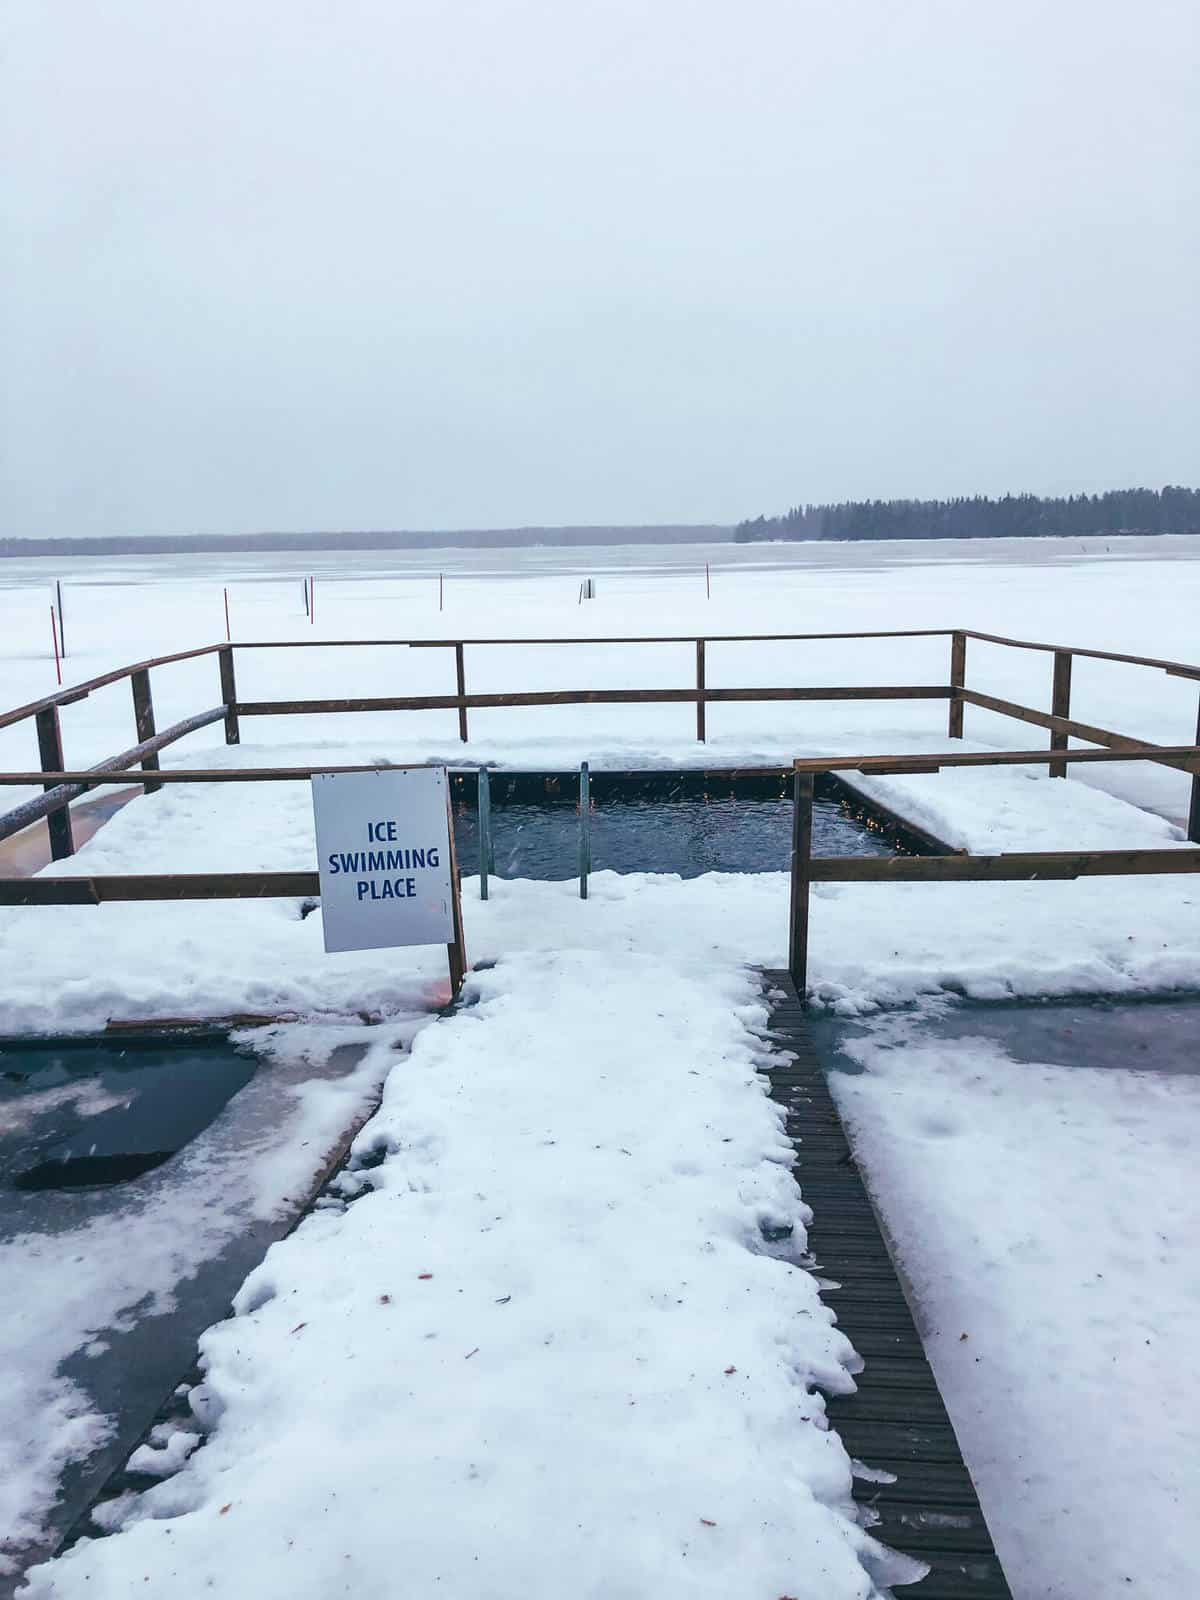 An ice swimming place in front of a frozen lake surrounded by snow